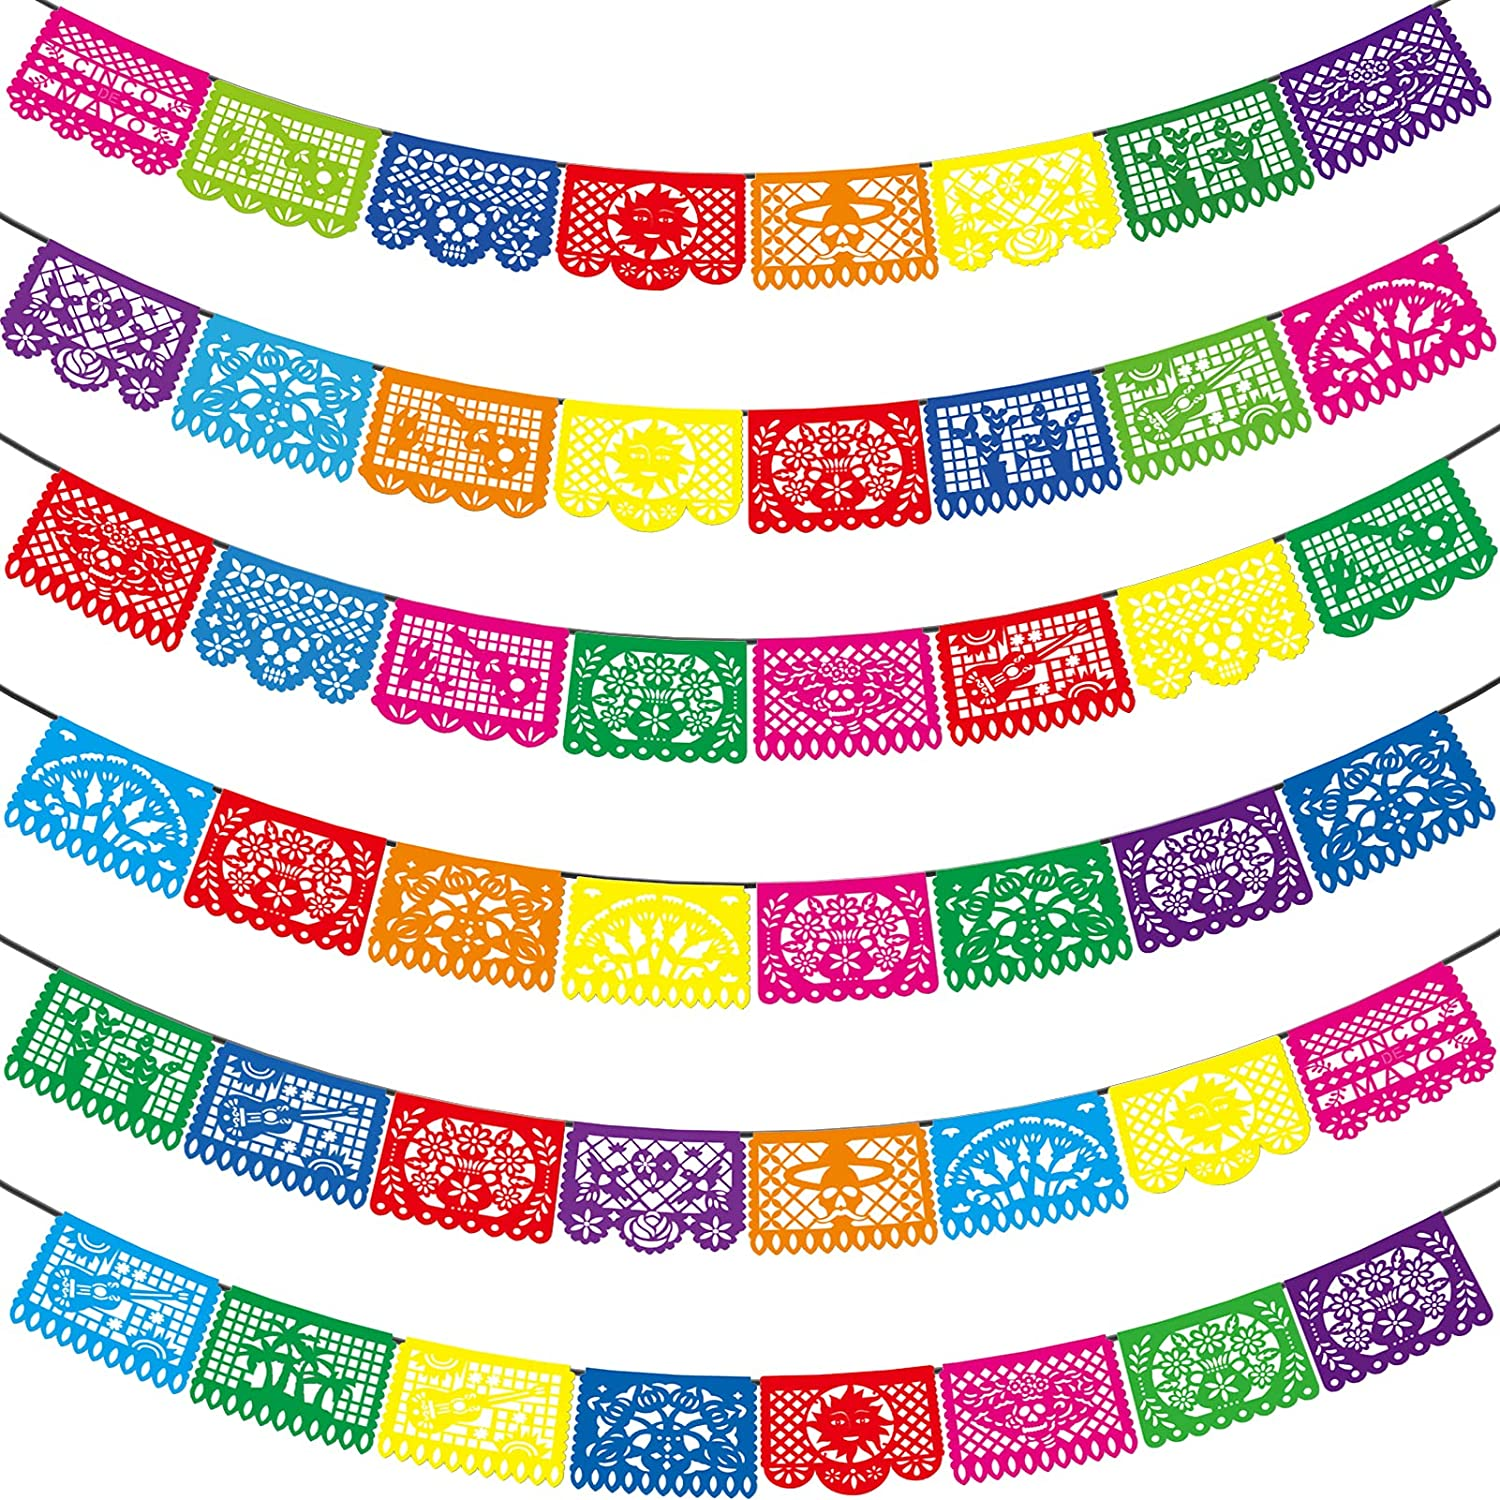 Mexican Party Banners - 6 Pack Fiesta Mexican Party Dia De Los Muertos Day of the Dead Decoration Cino de Mayo Halloween Mexicano Fiesta Party Supplies Plastic Papel Picado Banner -90 Ft & 6 Styles